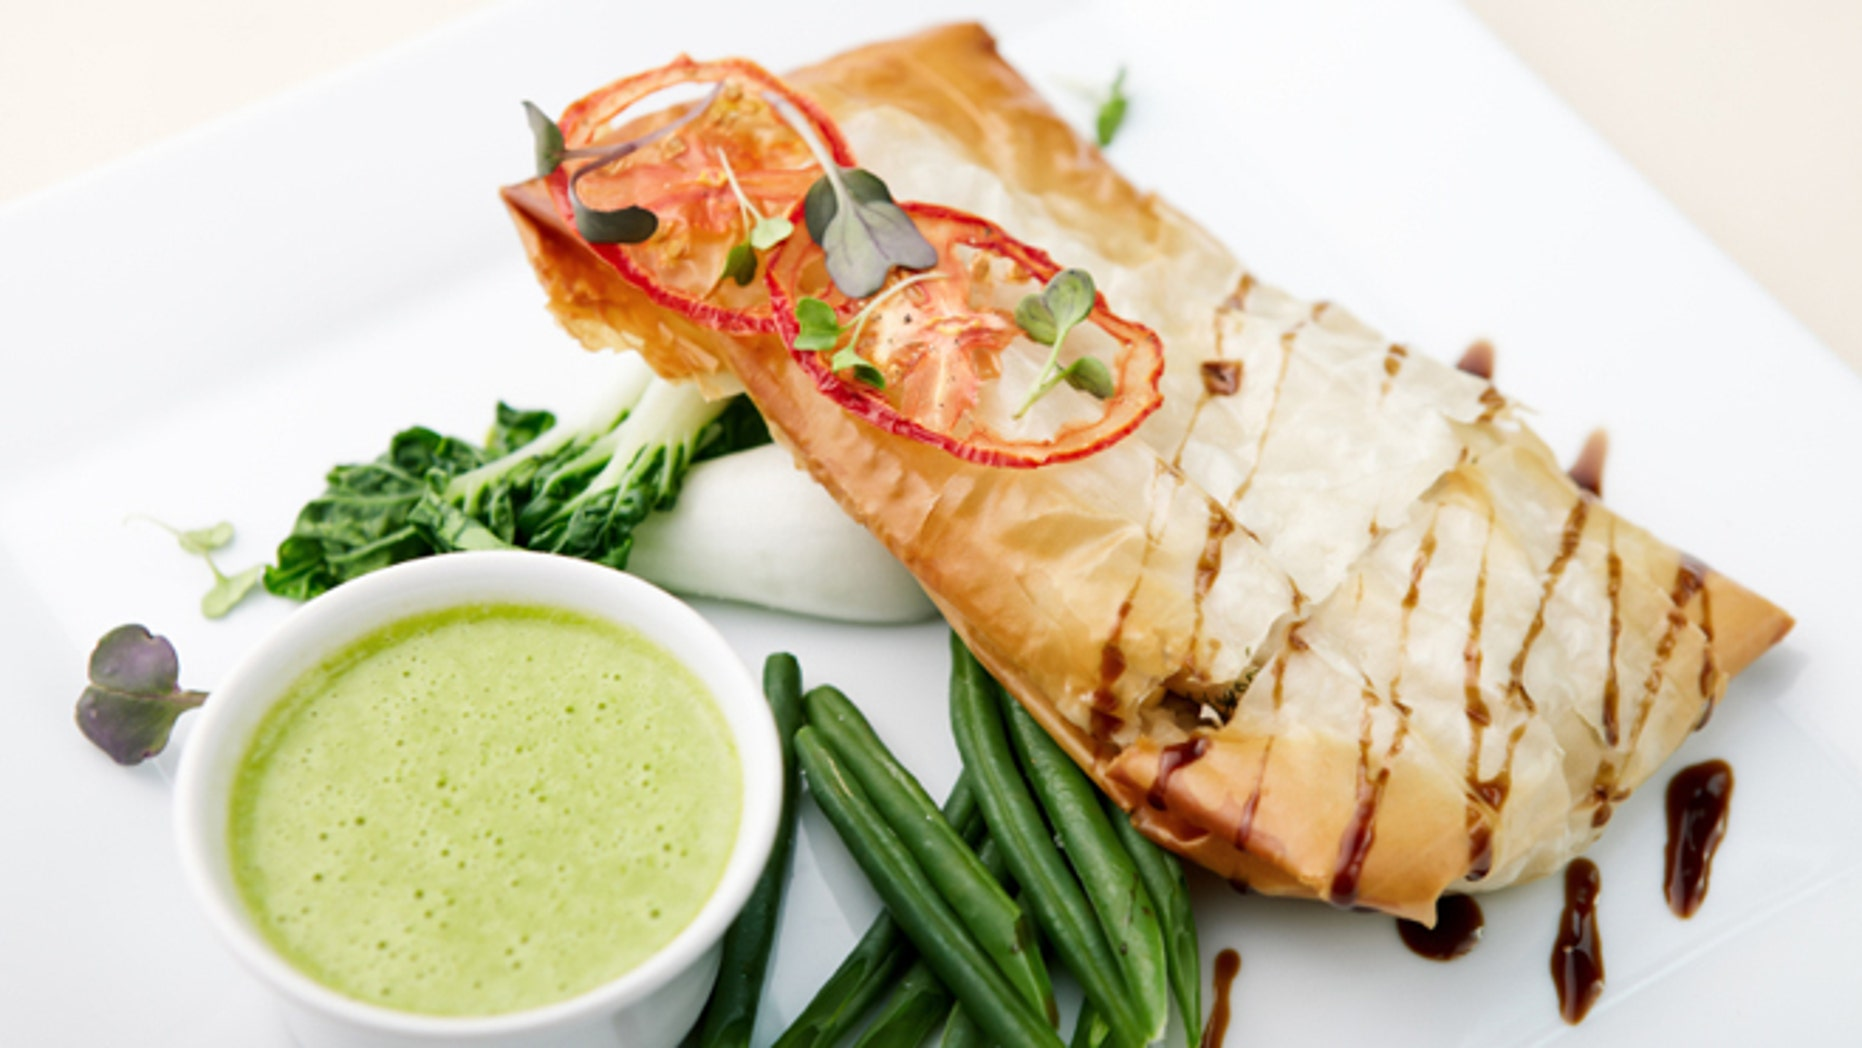 Chilean sea bass in papilliote with sauce - iStock Photo